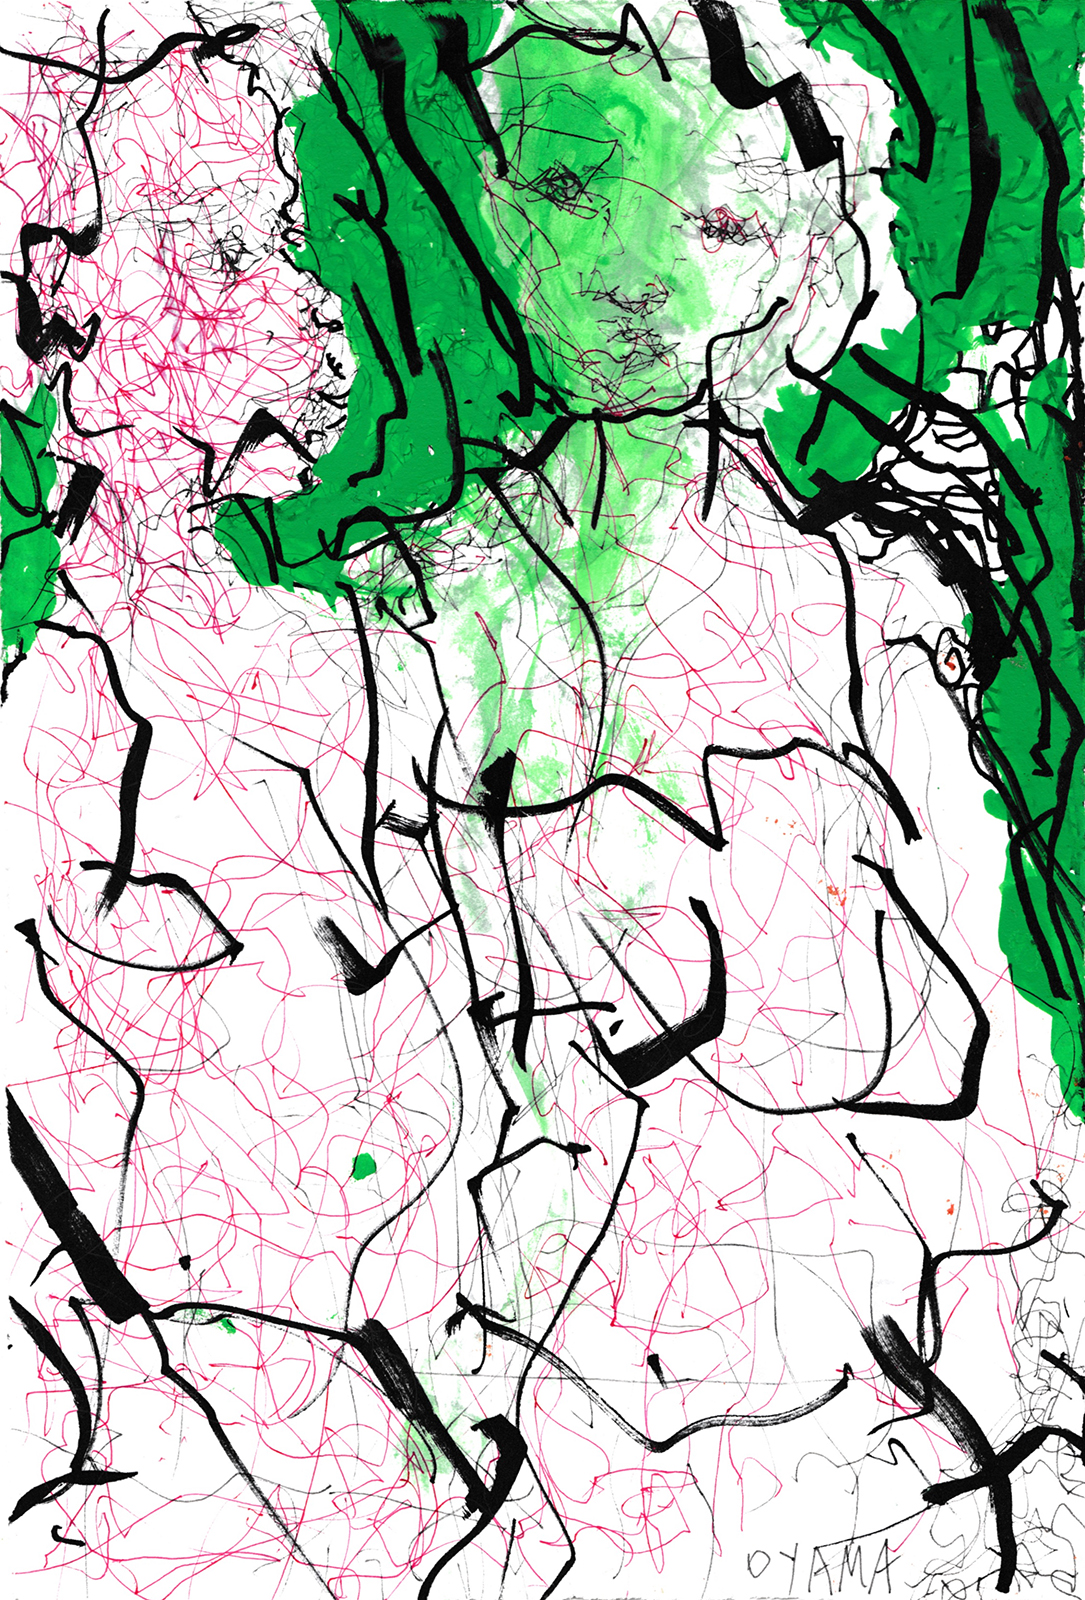 """Oyama's Egon Schiele-esque drawings are made with the artist's non-dominant hand. """"Untitled (CO 052),"""" 2016, Mixed media on paper"""